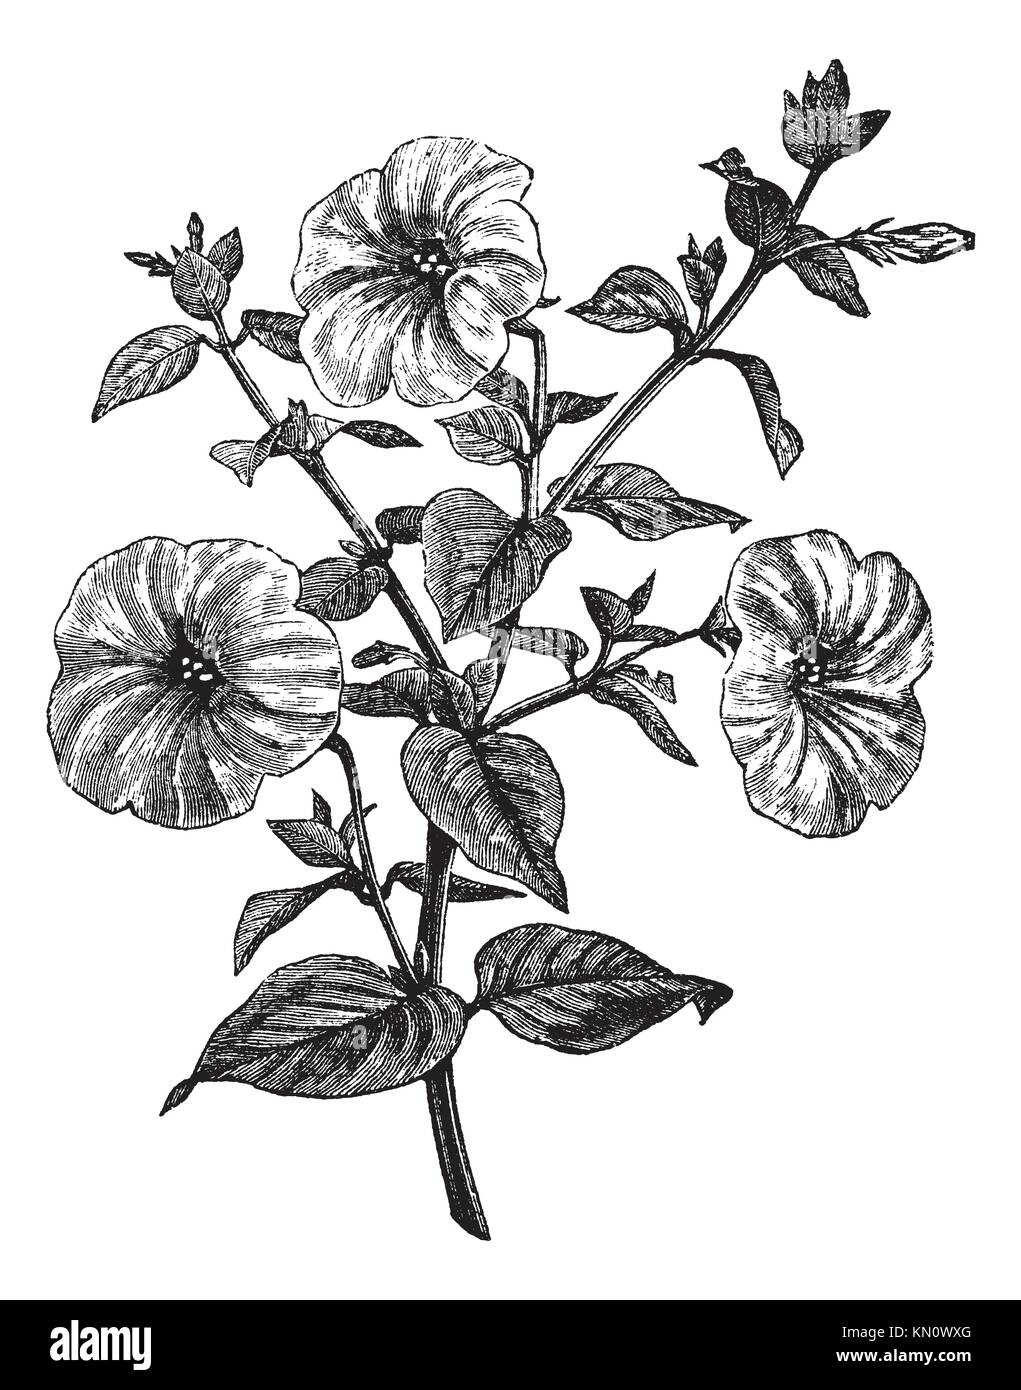 Solanaceae Illustration Stock Photos How Do You Draw Floral Diagram Of Family Petunia Or Sp Vintage Engraved Trousset Encyclopedia 1886 1891 Image